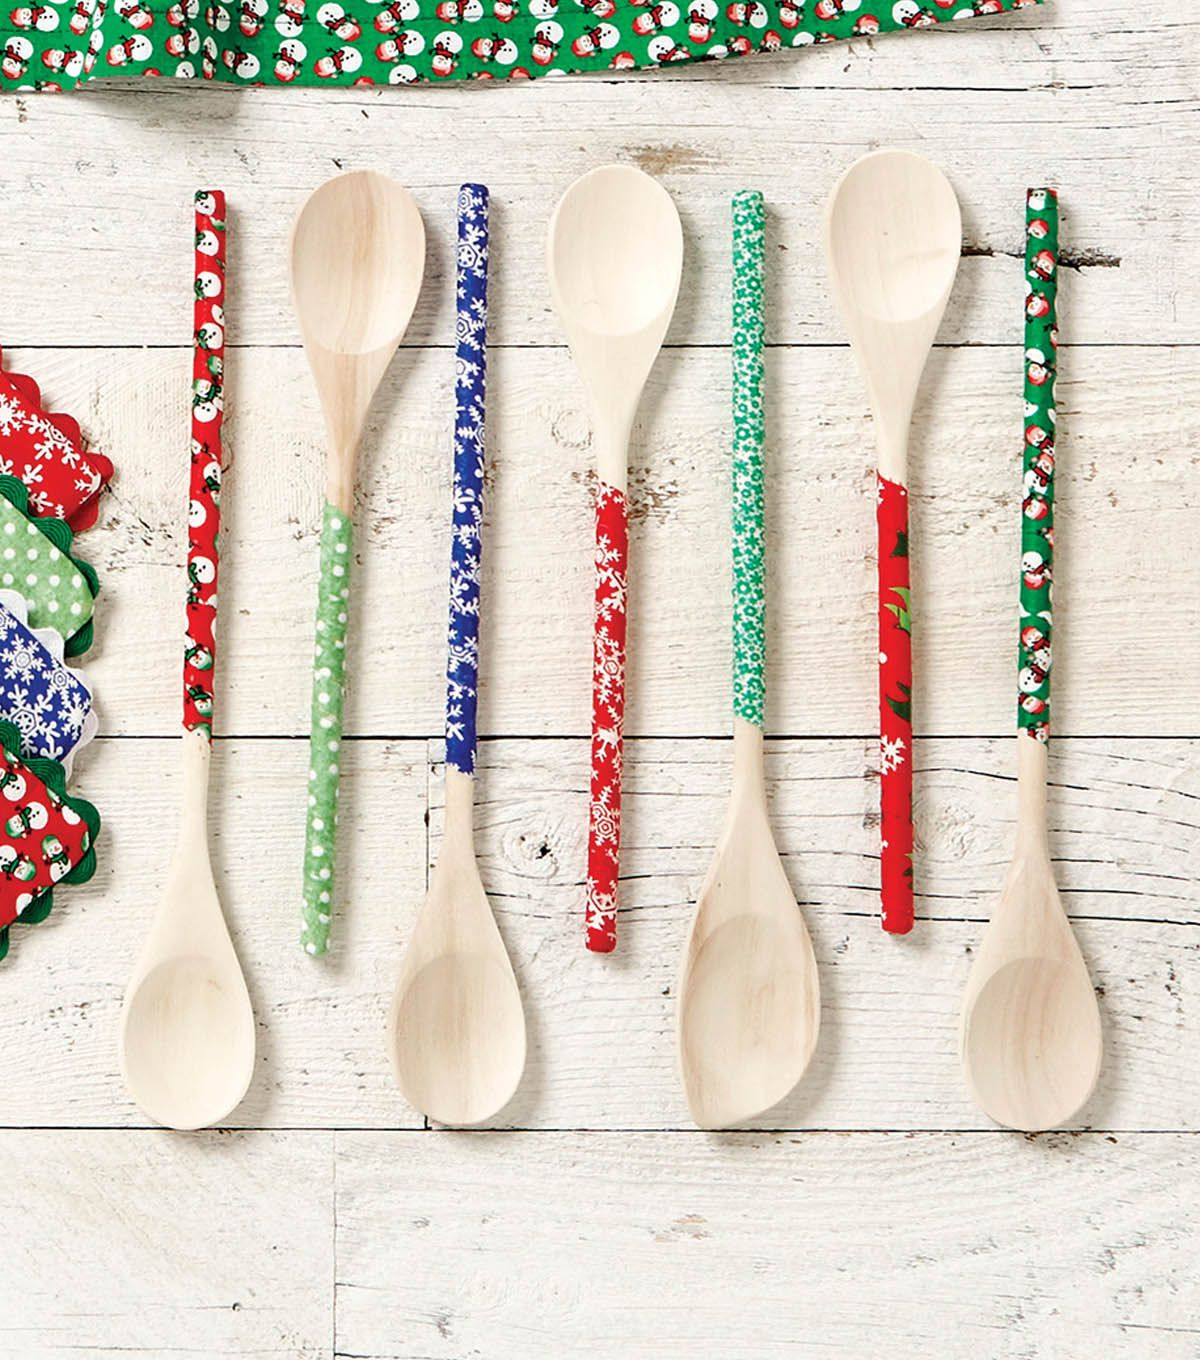 holiday wooden spoons stuff to make diy christmas gifts wooden spoon crafts xmas crafts. Black Bedroom Furniture Sets. Home Design Ideas